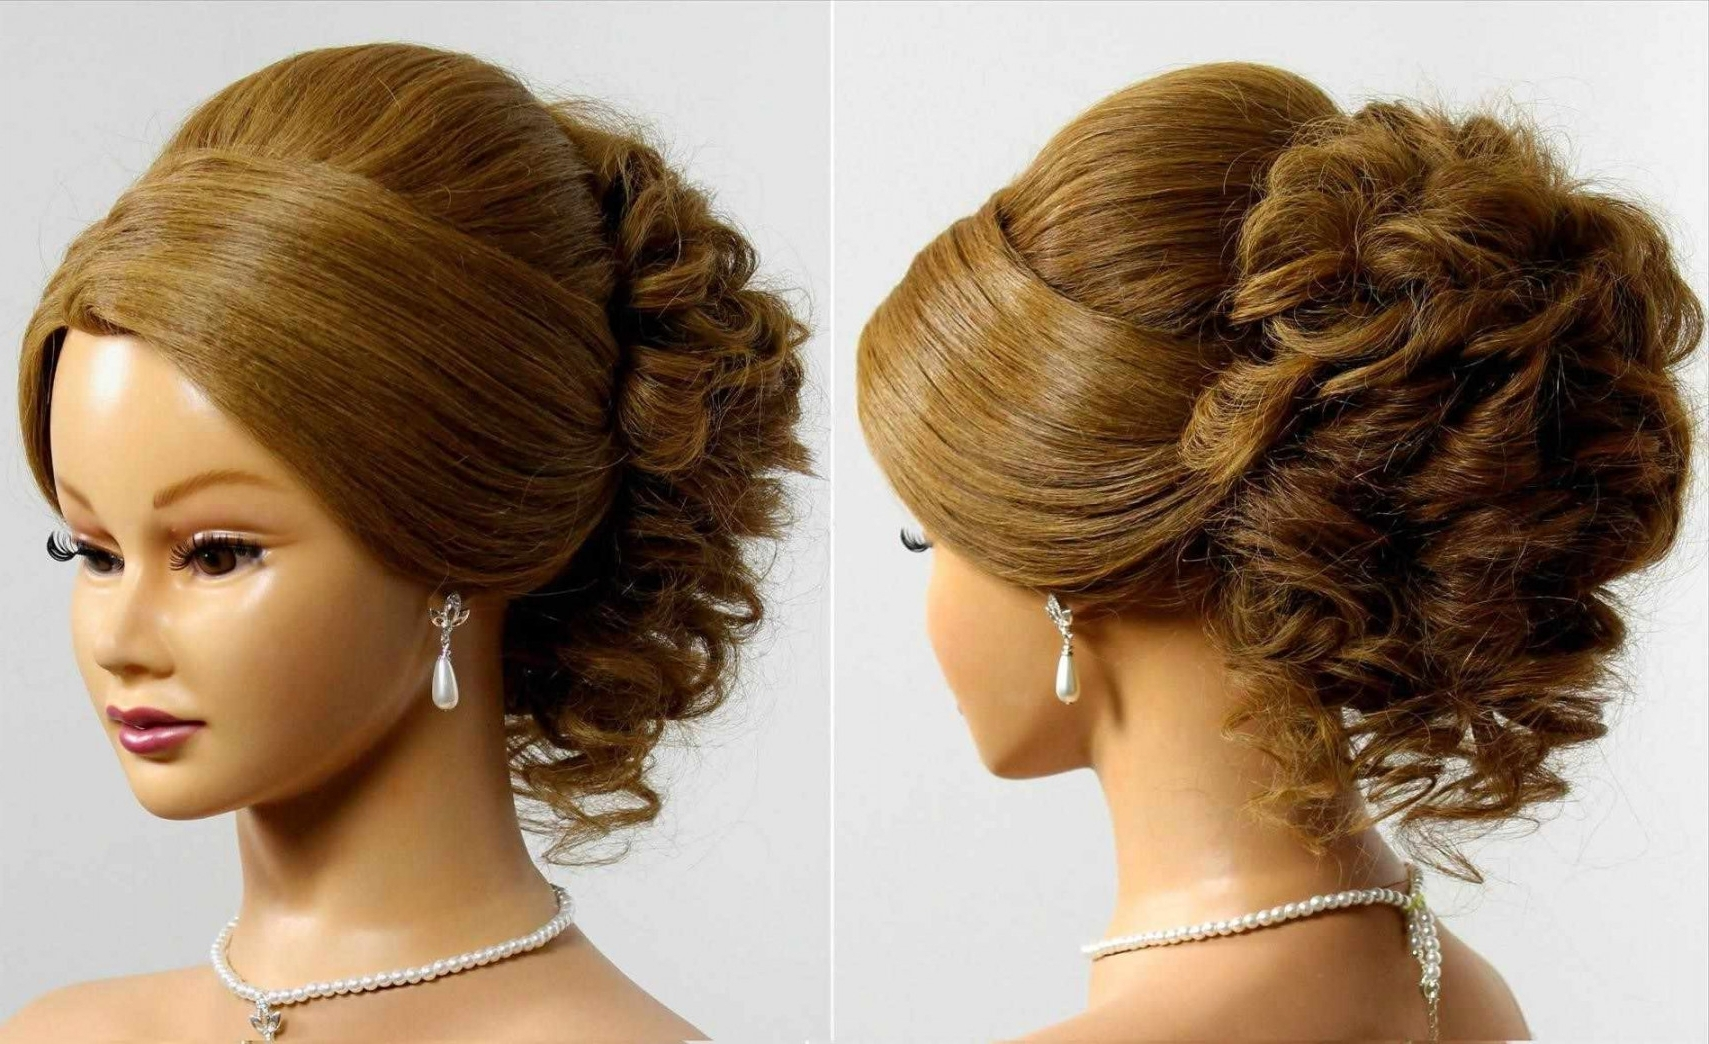 Hairstyles For Medium Length Hair Length Updo Hairstyles Medium Throughout Medium Long Hair Updo Hairstyles (View 8 of 15)